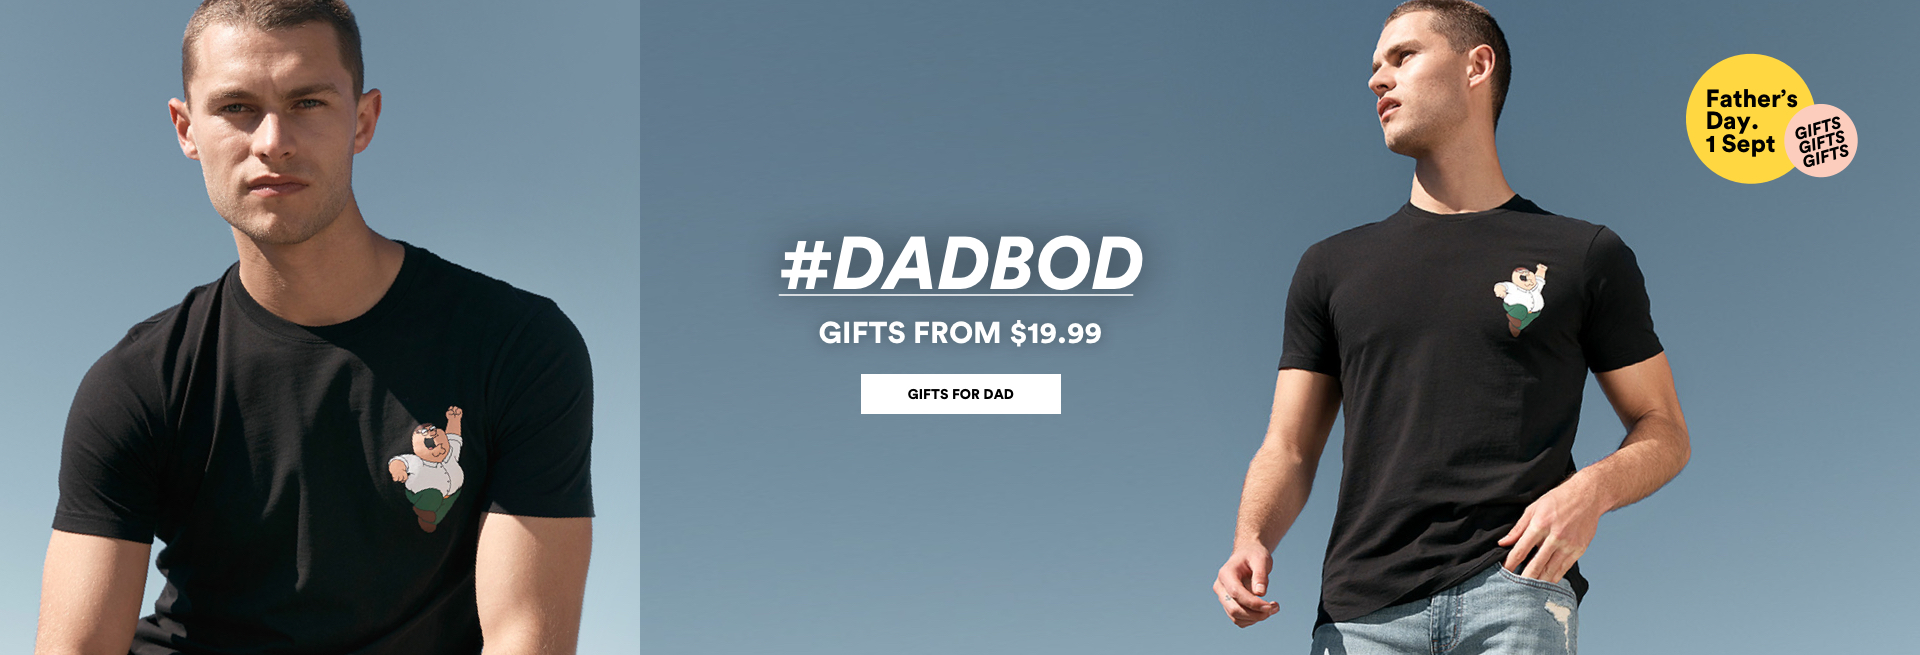 #DADBOD. Gifts for Dad from $19.99. Click to shop.